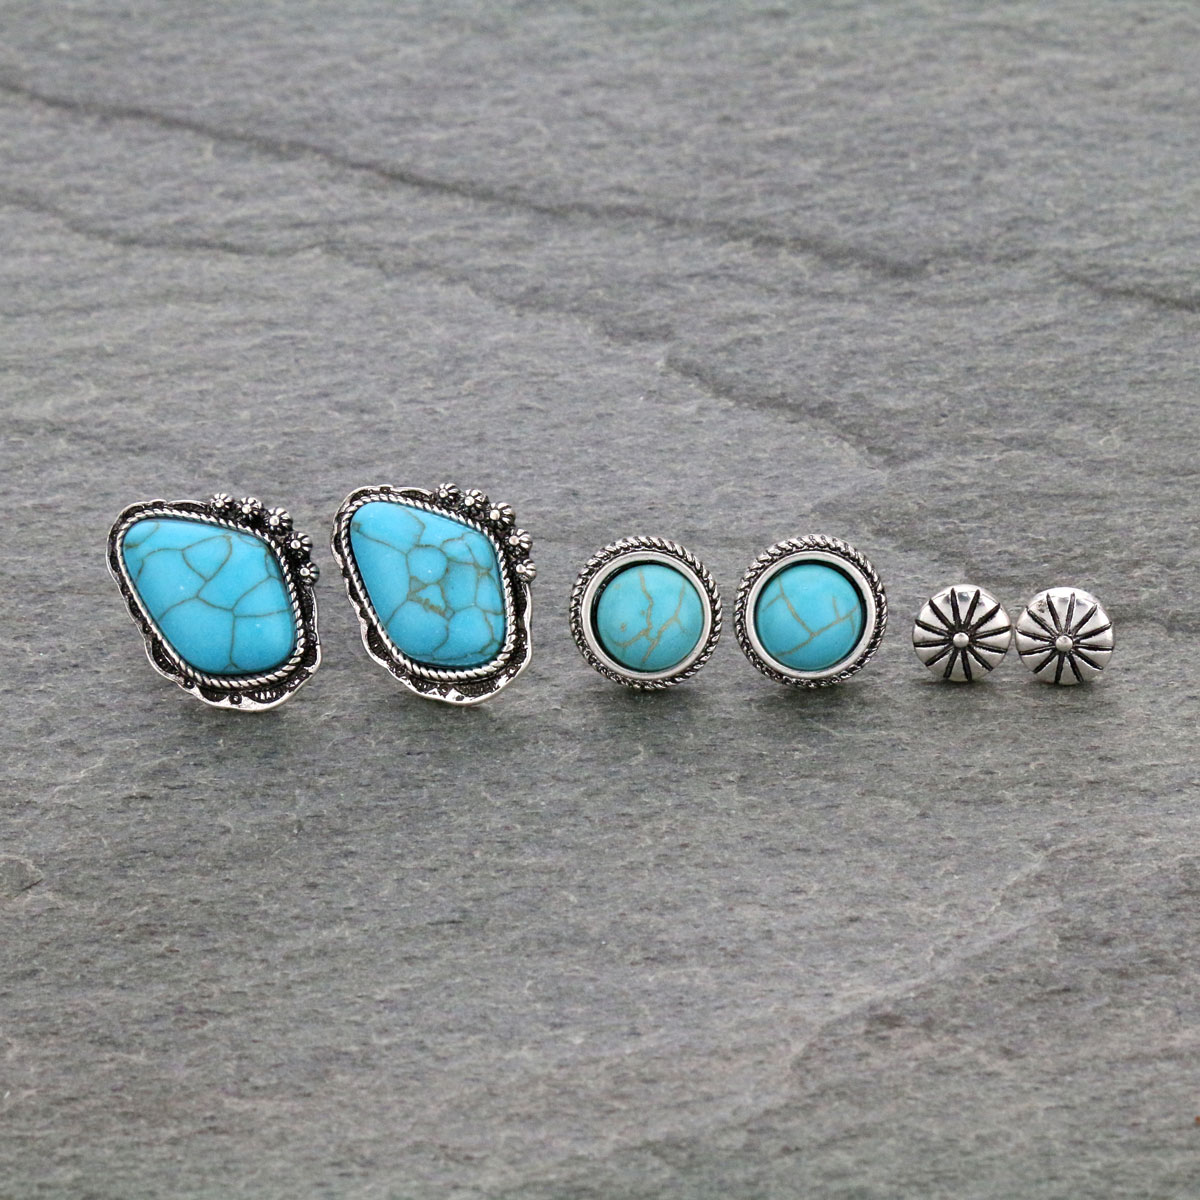 3 Pair Western Turquoise Post Earrings Set-SE1115/SBTQ